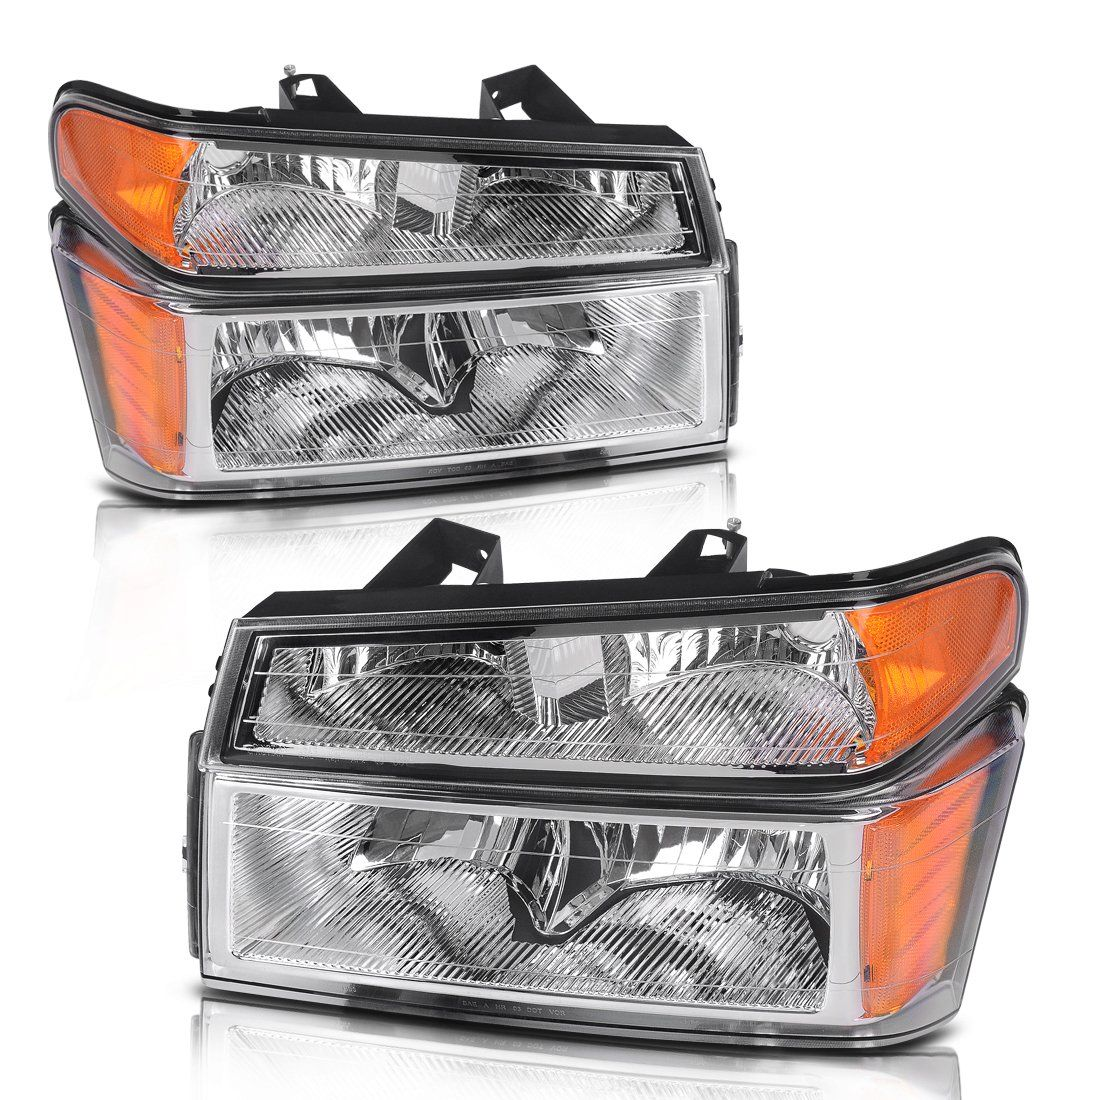 For 2004 2012 Chevy Colorado Gmc Canyon Headlights Replacement Chrome Housing With Amber Reflector Bump 2012 Chevy Colorado Chevy Colorado Headlight Assembly